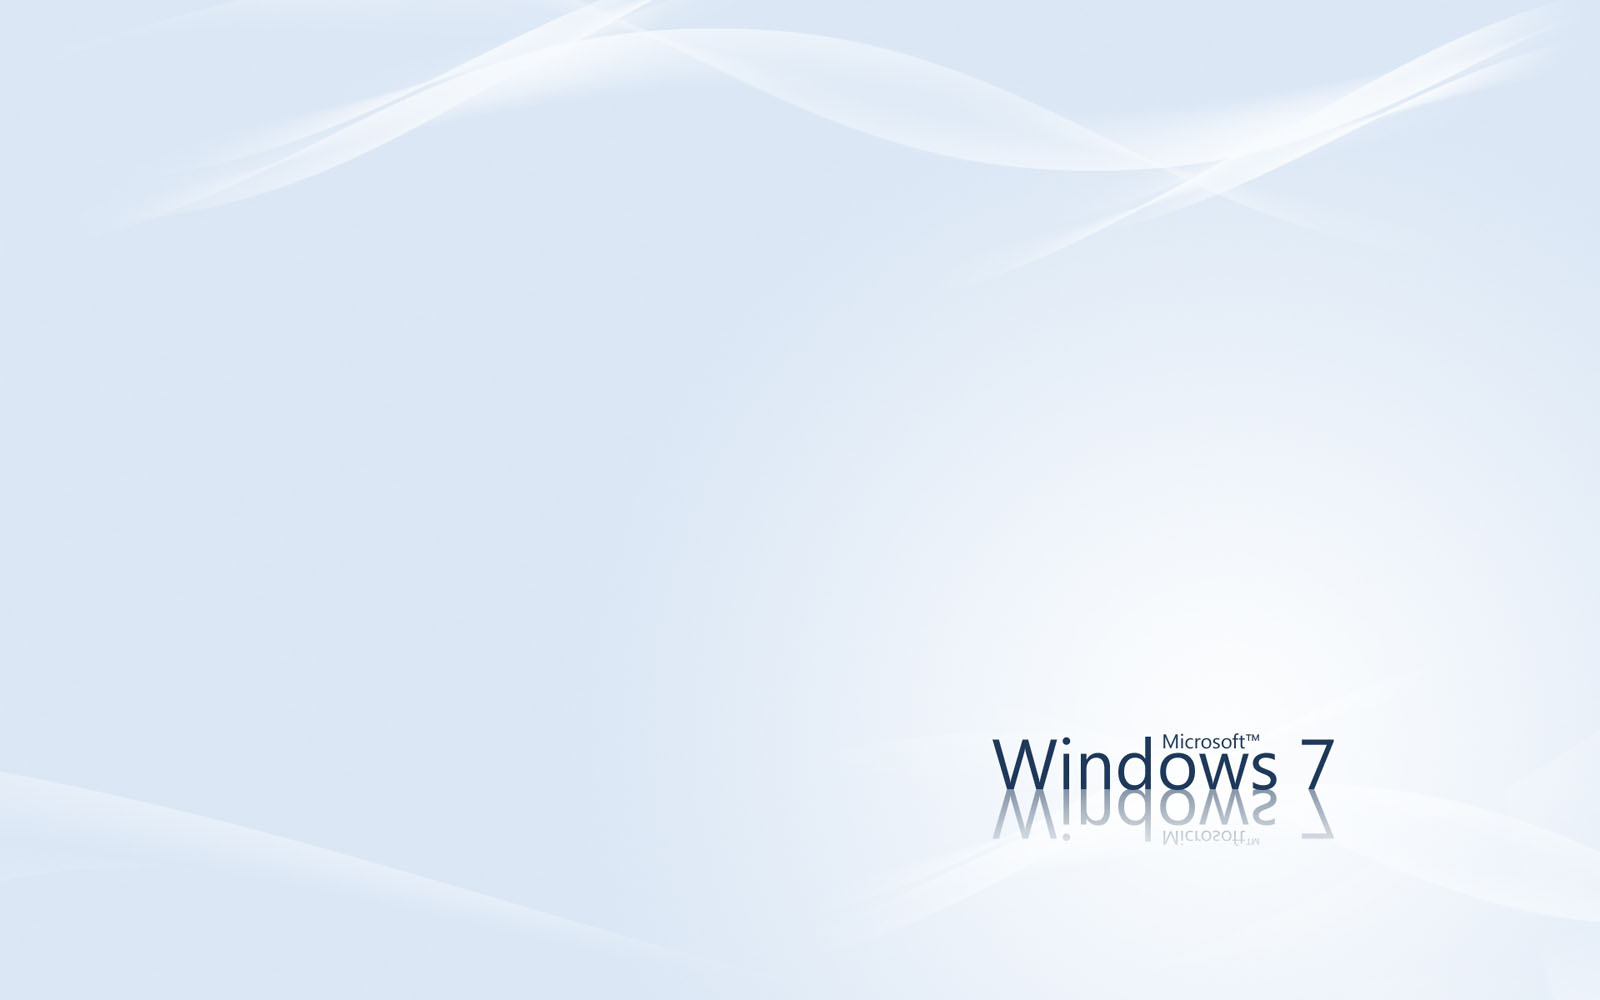 wallpapers: windows 7 bright wallpapers